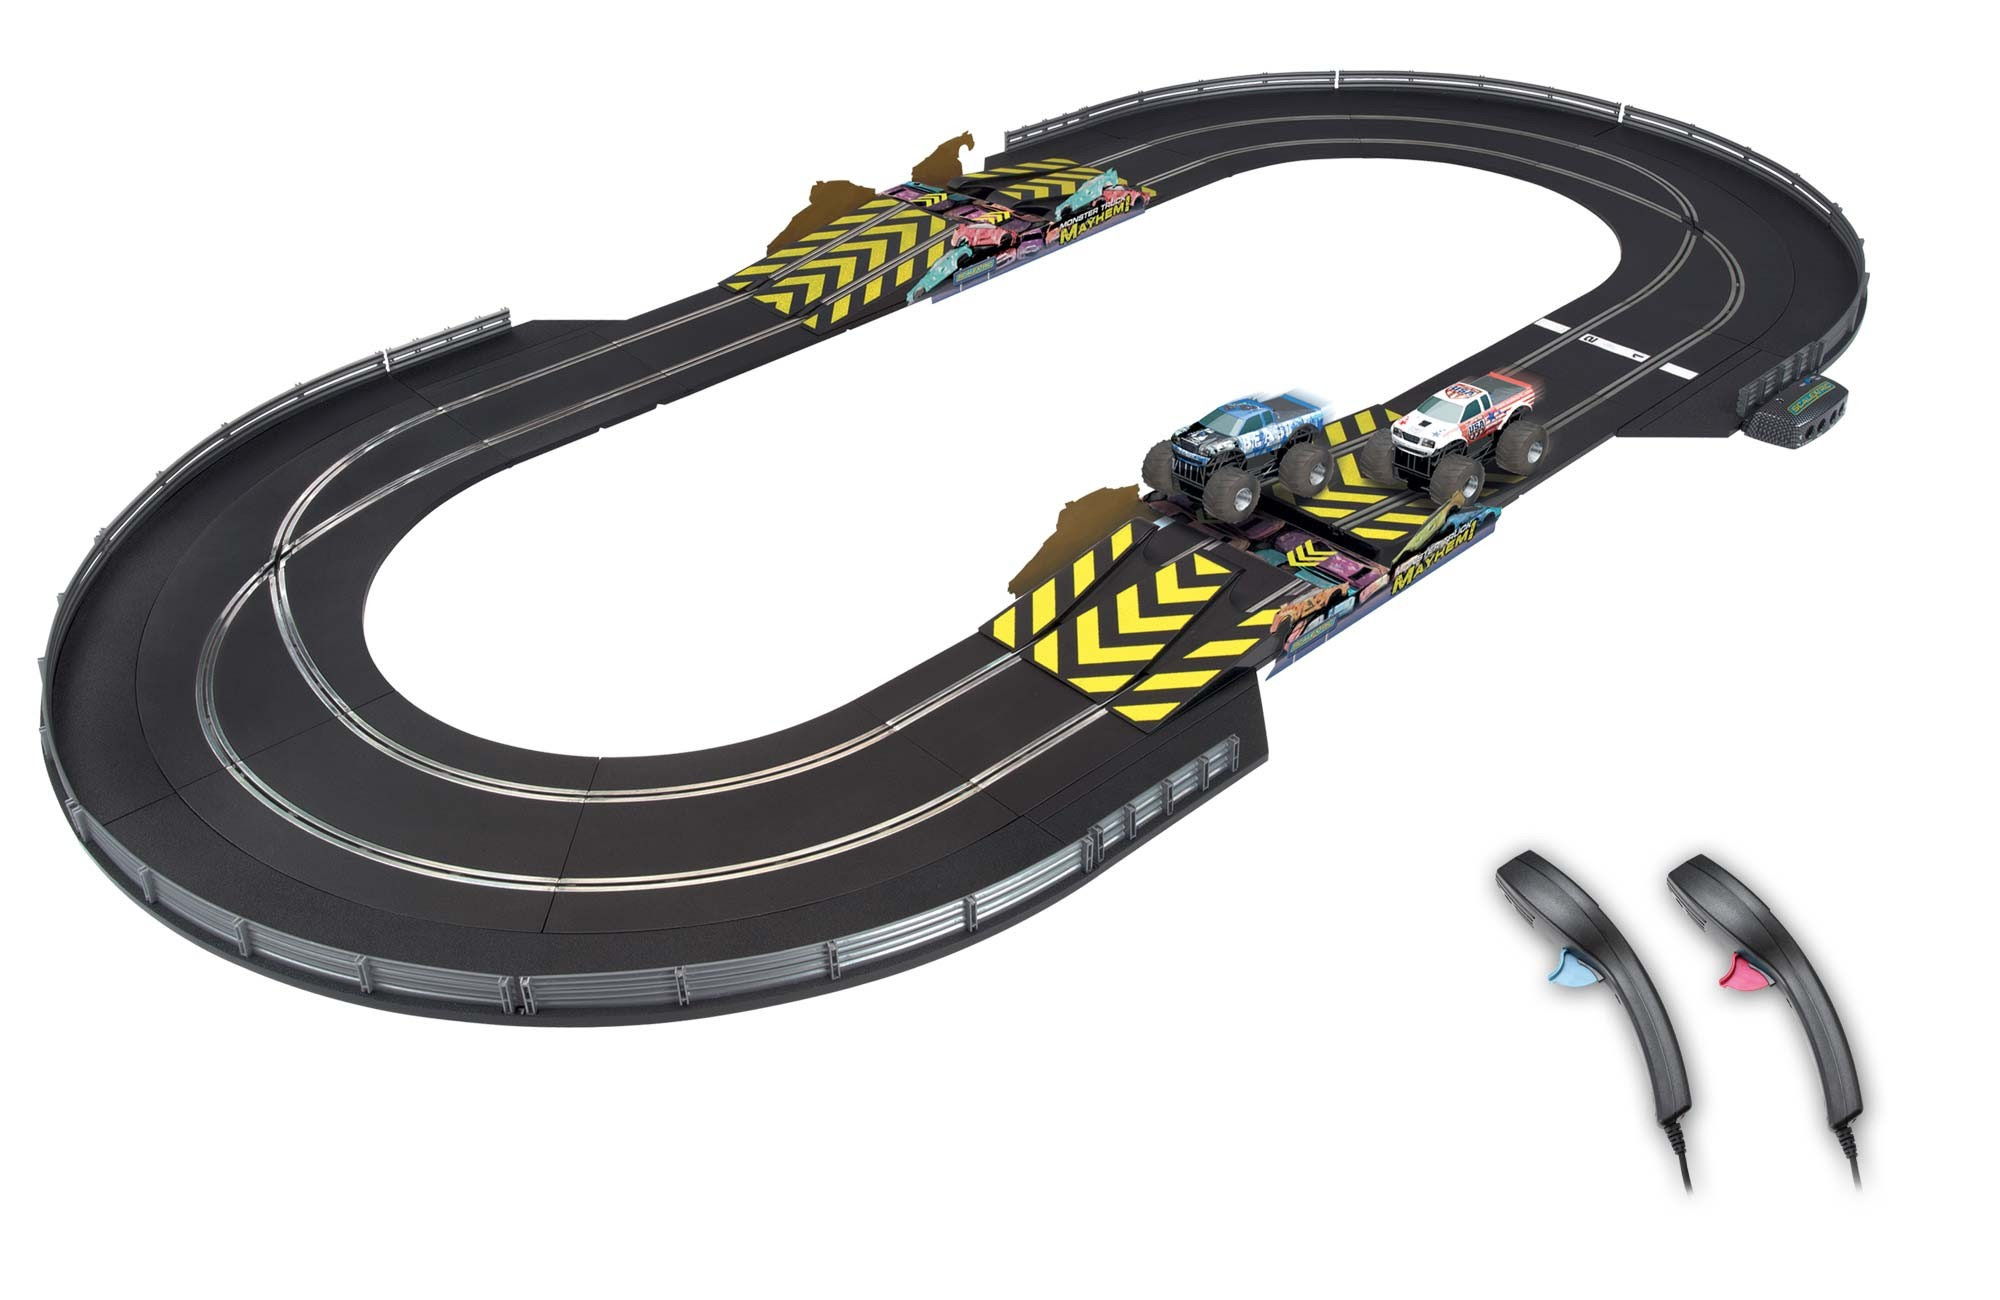 Slot track race sets